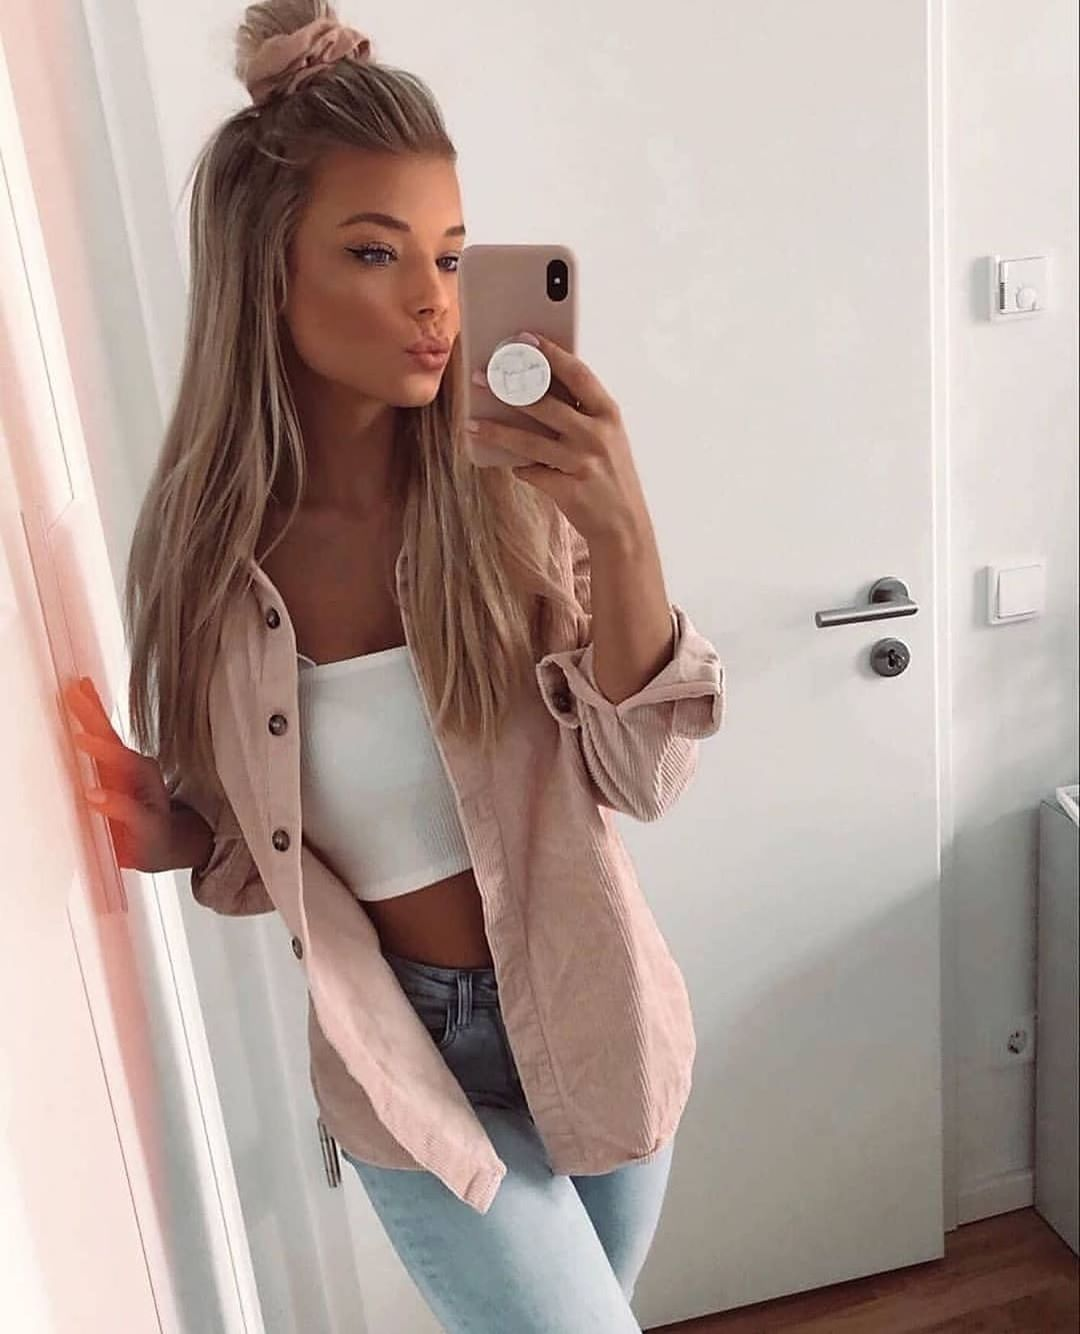 Beautiful look  #lookoftheday  Check @ootd for more! : DM please...